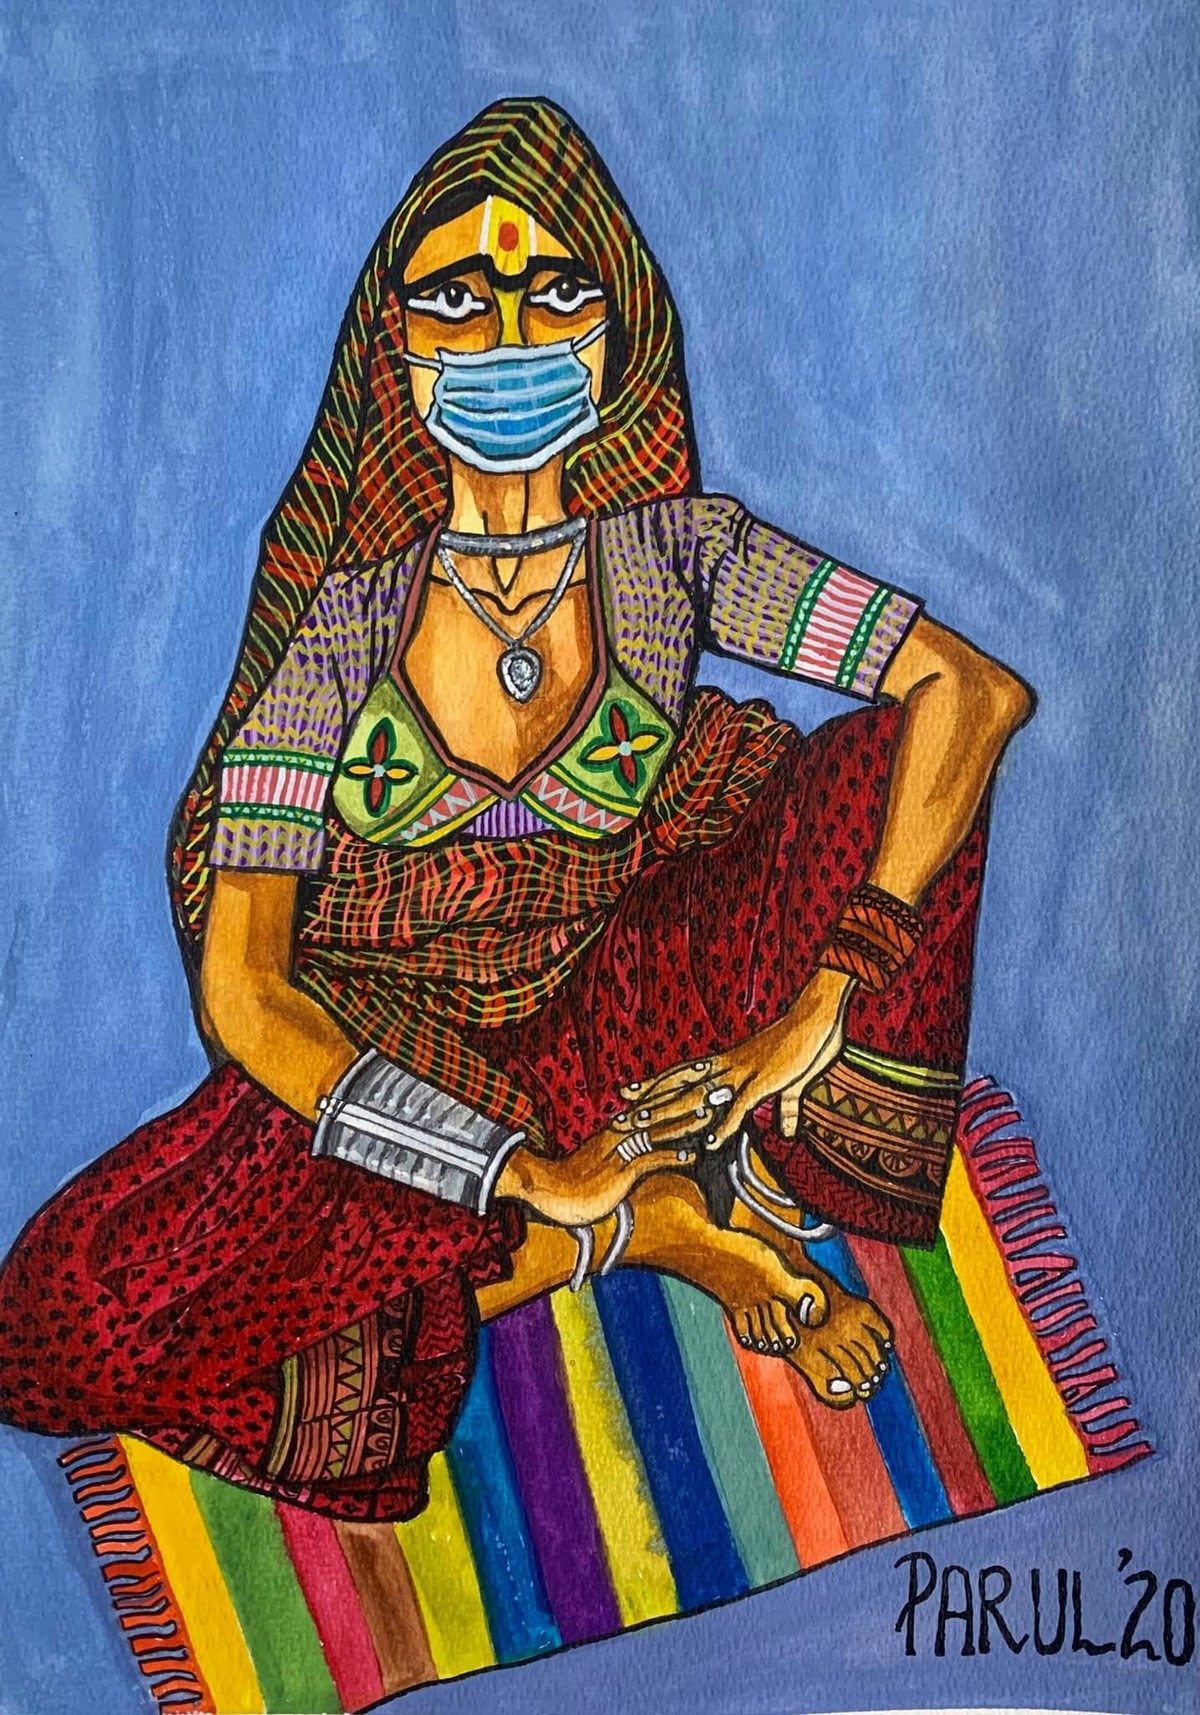 Year 2020 by Parul Aggarwal, Folk Painting, Watercolor and charcoal on paper, Ship Cove color